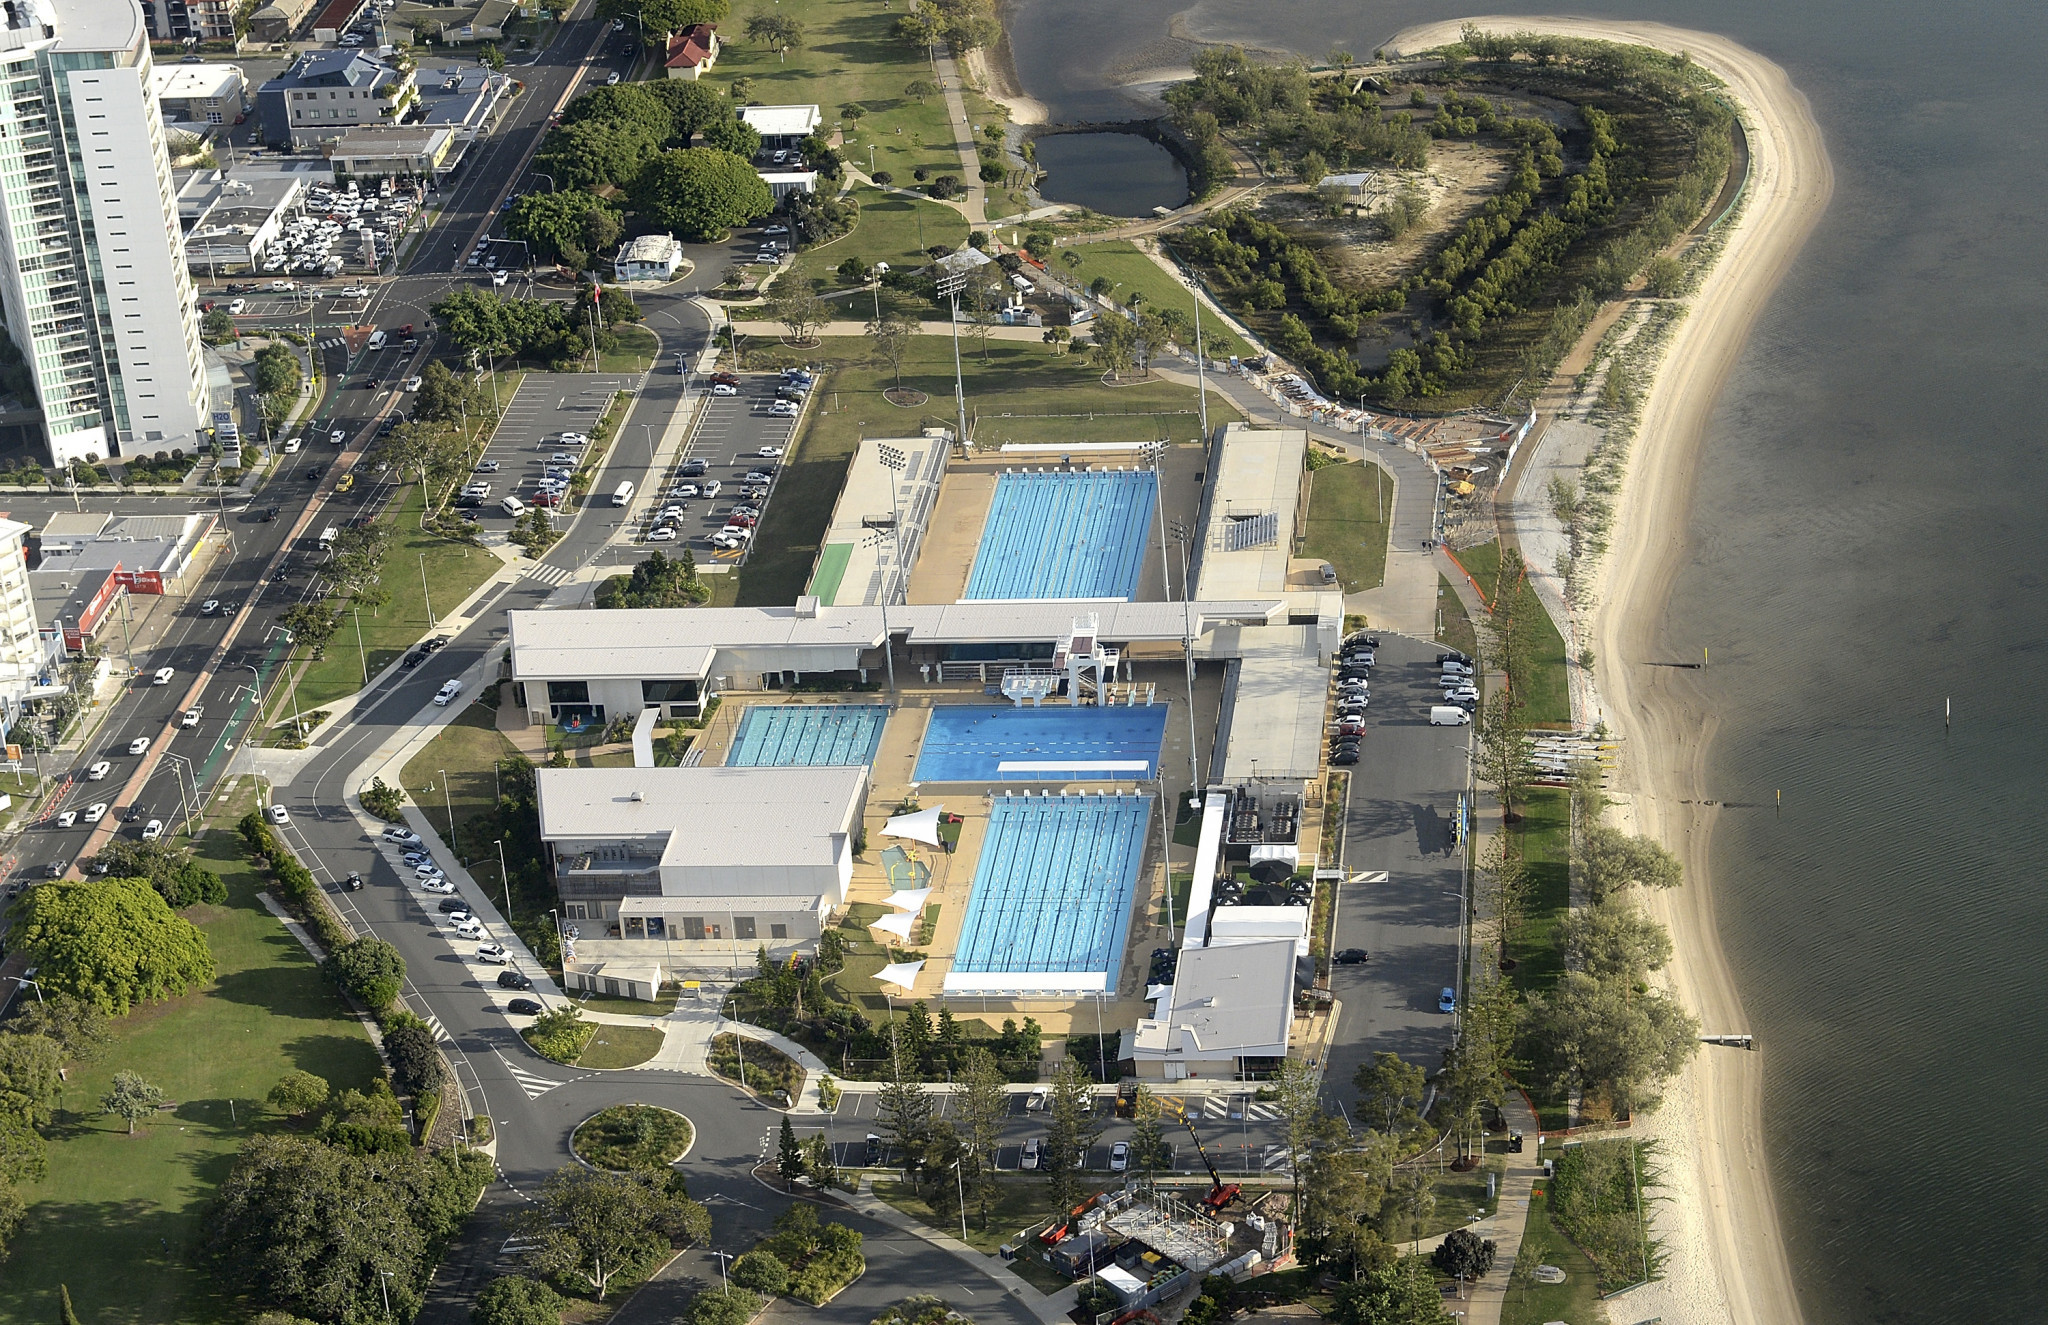 Temporary stands will turn the Gold Coast Aquatic Centre into a 10,000 seat venue at the Games ©Getty Images